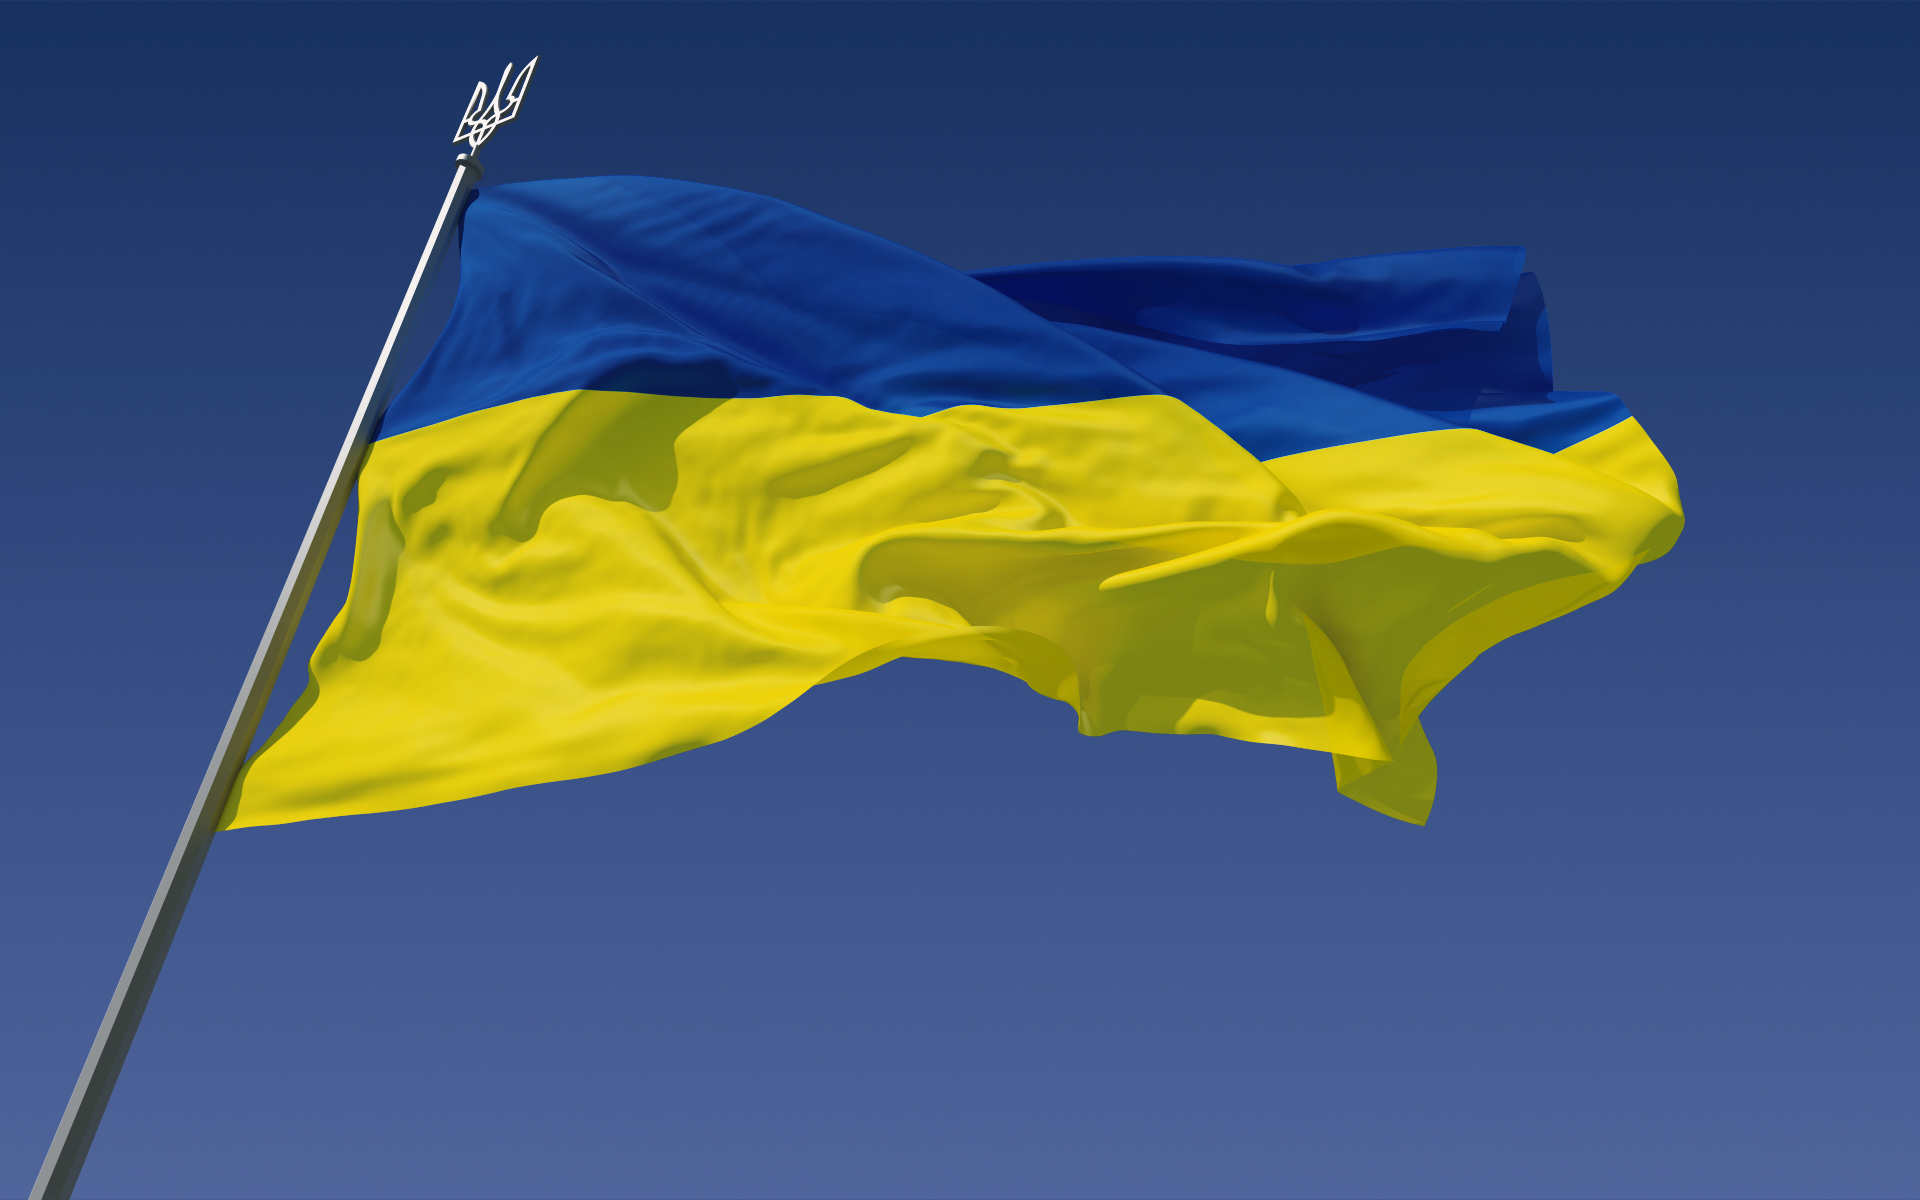 http://upload.wikimedia.org/wikipedia/commons/5/5e/Flag_of_Ukraine.jpg